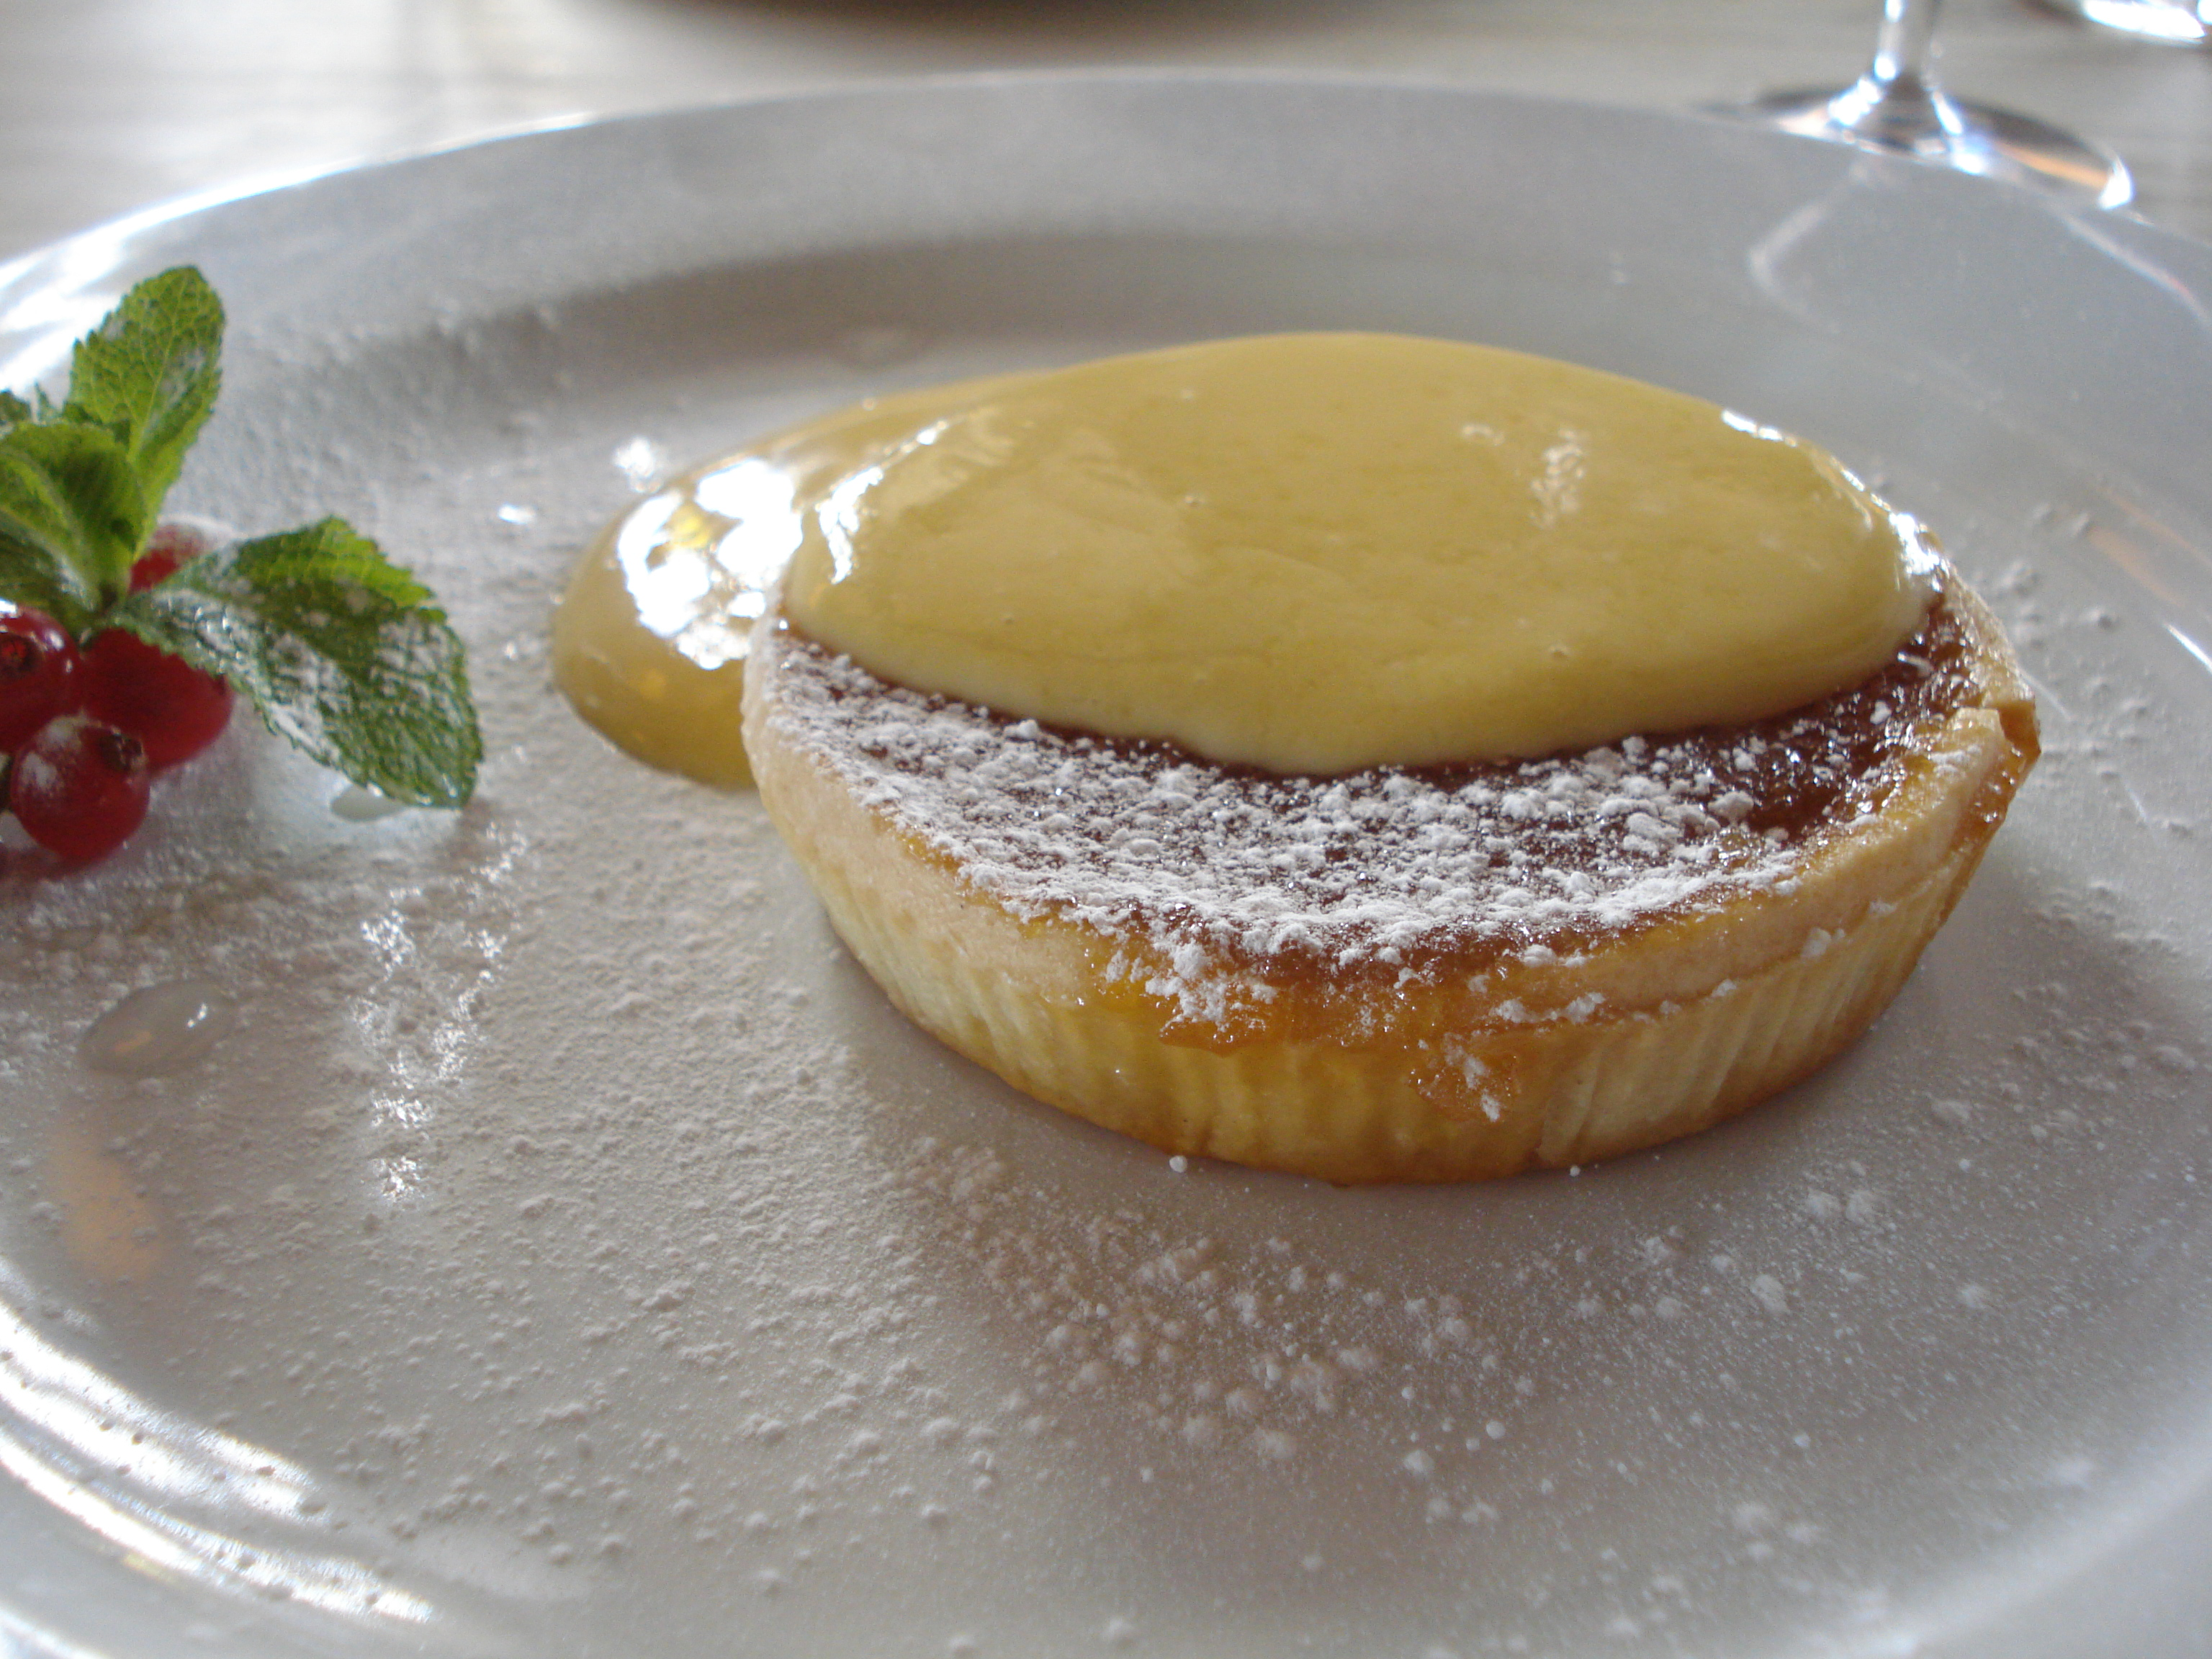 File Treacle Tart With Custard At The Blue Vinny Jpg Wikimedia Commons